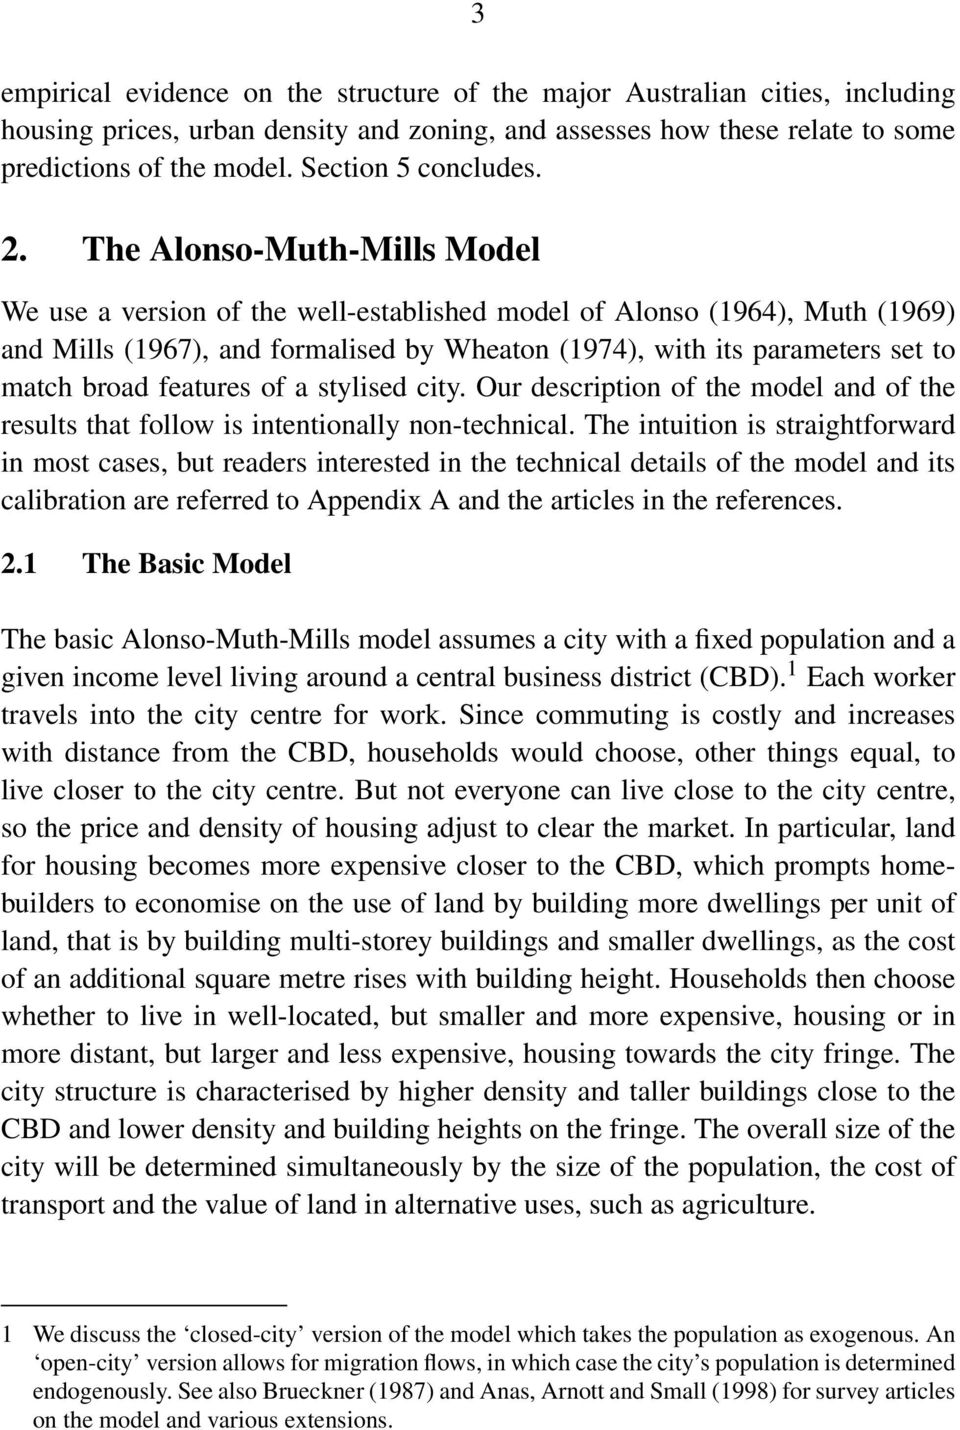 The Alonso-Muth-Mills Model We use a version of the well-established model of Alonso (1964), Muth (1969) and Mills (1967), and formalised by Wheaton (1974), with its parameters set to match broad